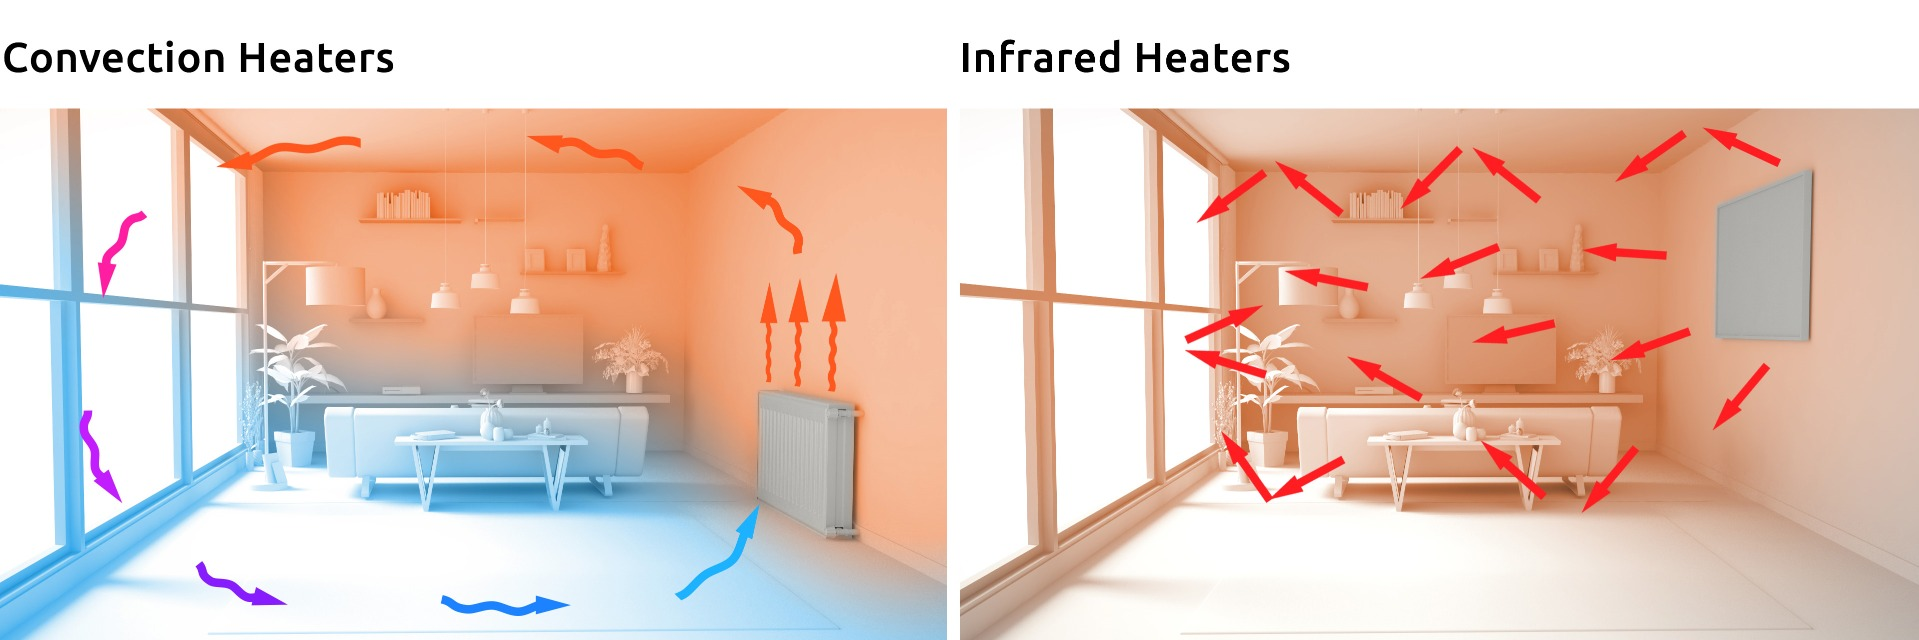 COnvection vs. IR Heating - How Does Infrared Heating Work?